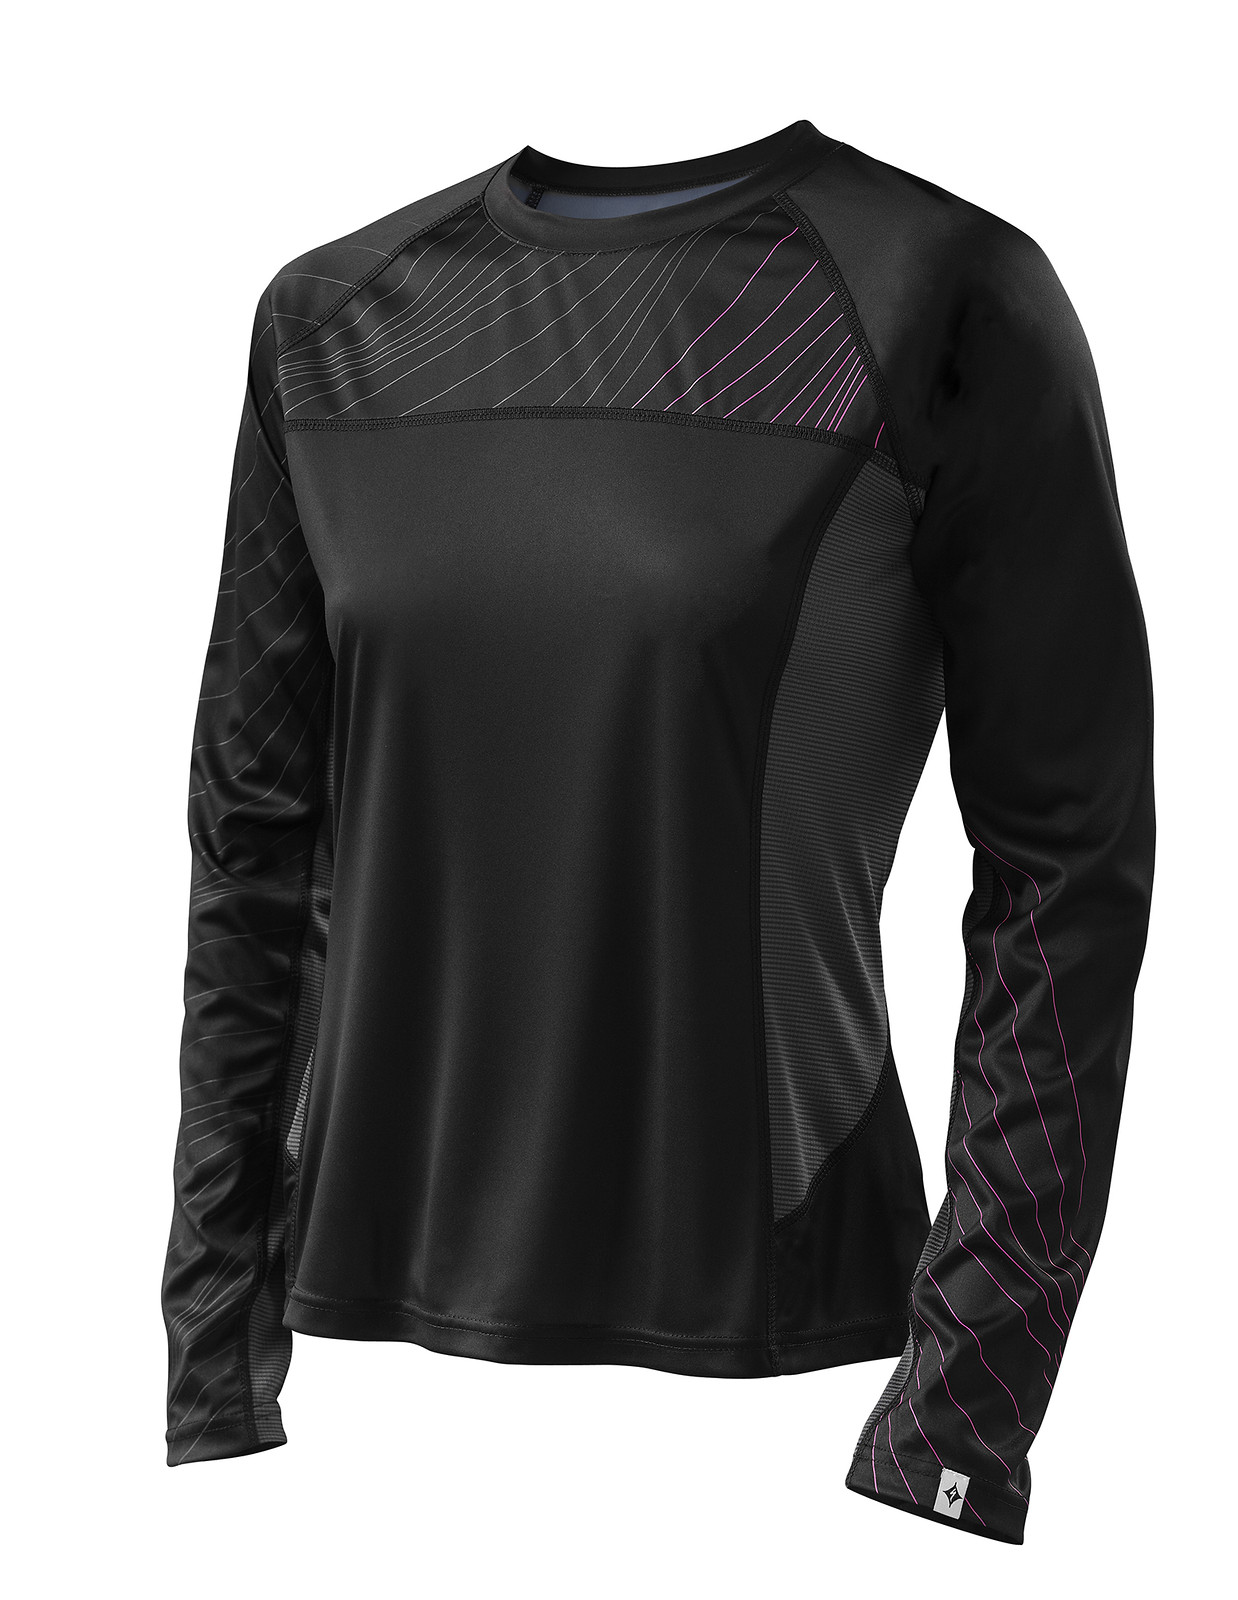 Specialized Women s Andorra Comp Long Sleeve Jersey - Reviews ... a50ed96bc